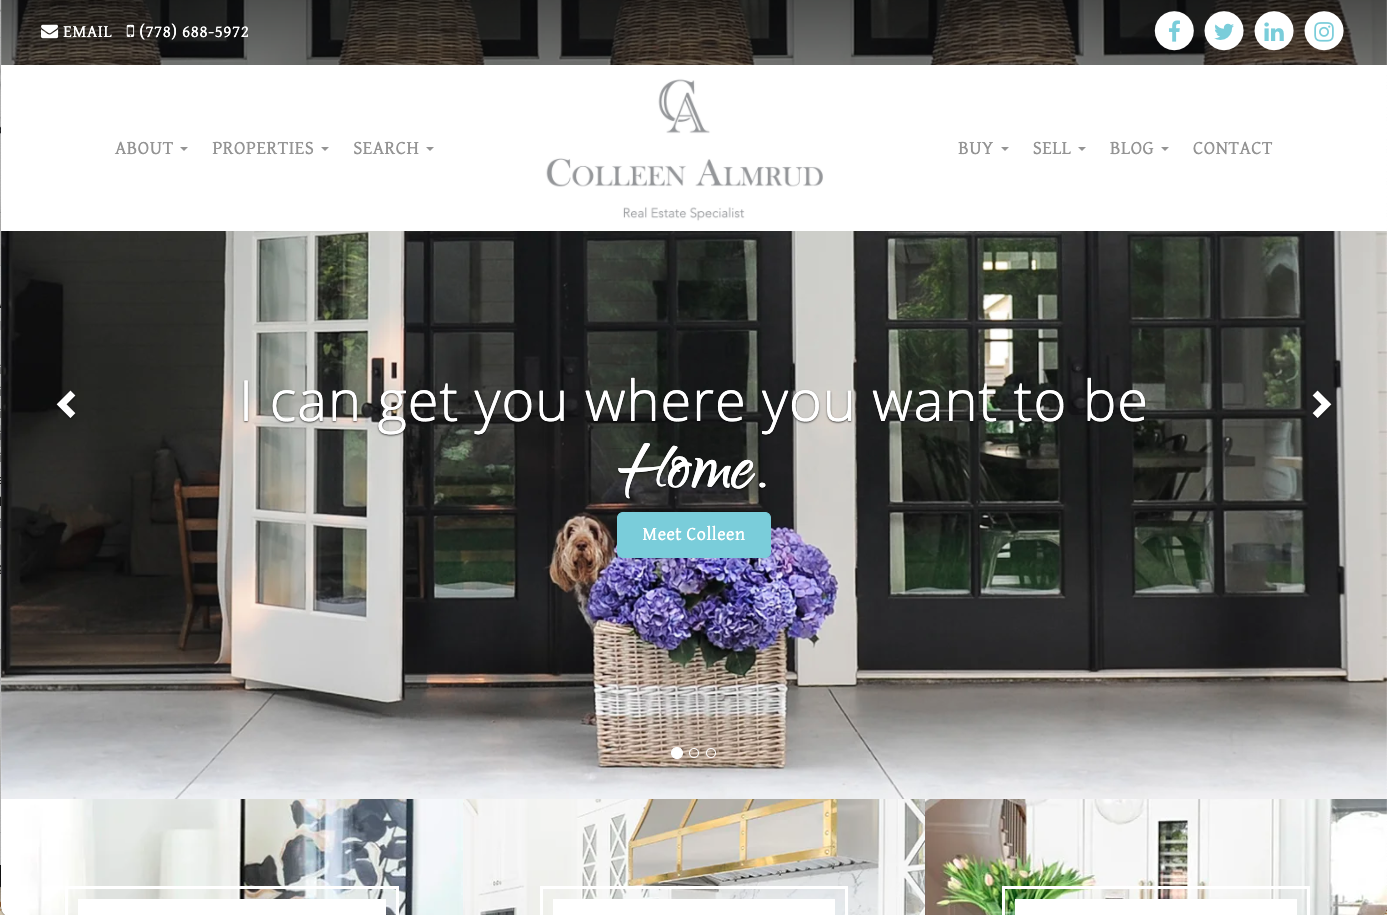 Colleen Almrud real estate website